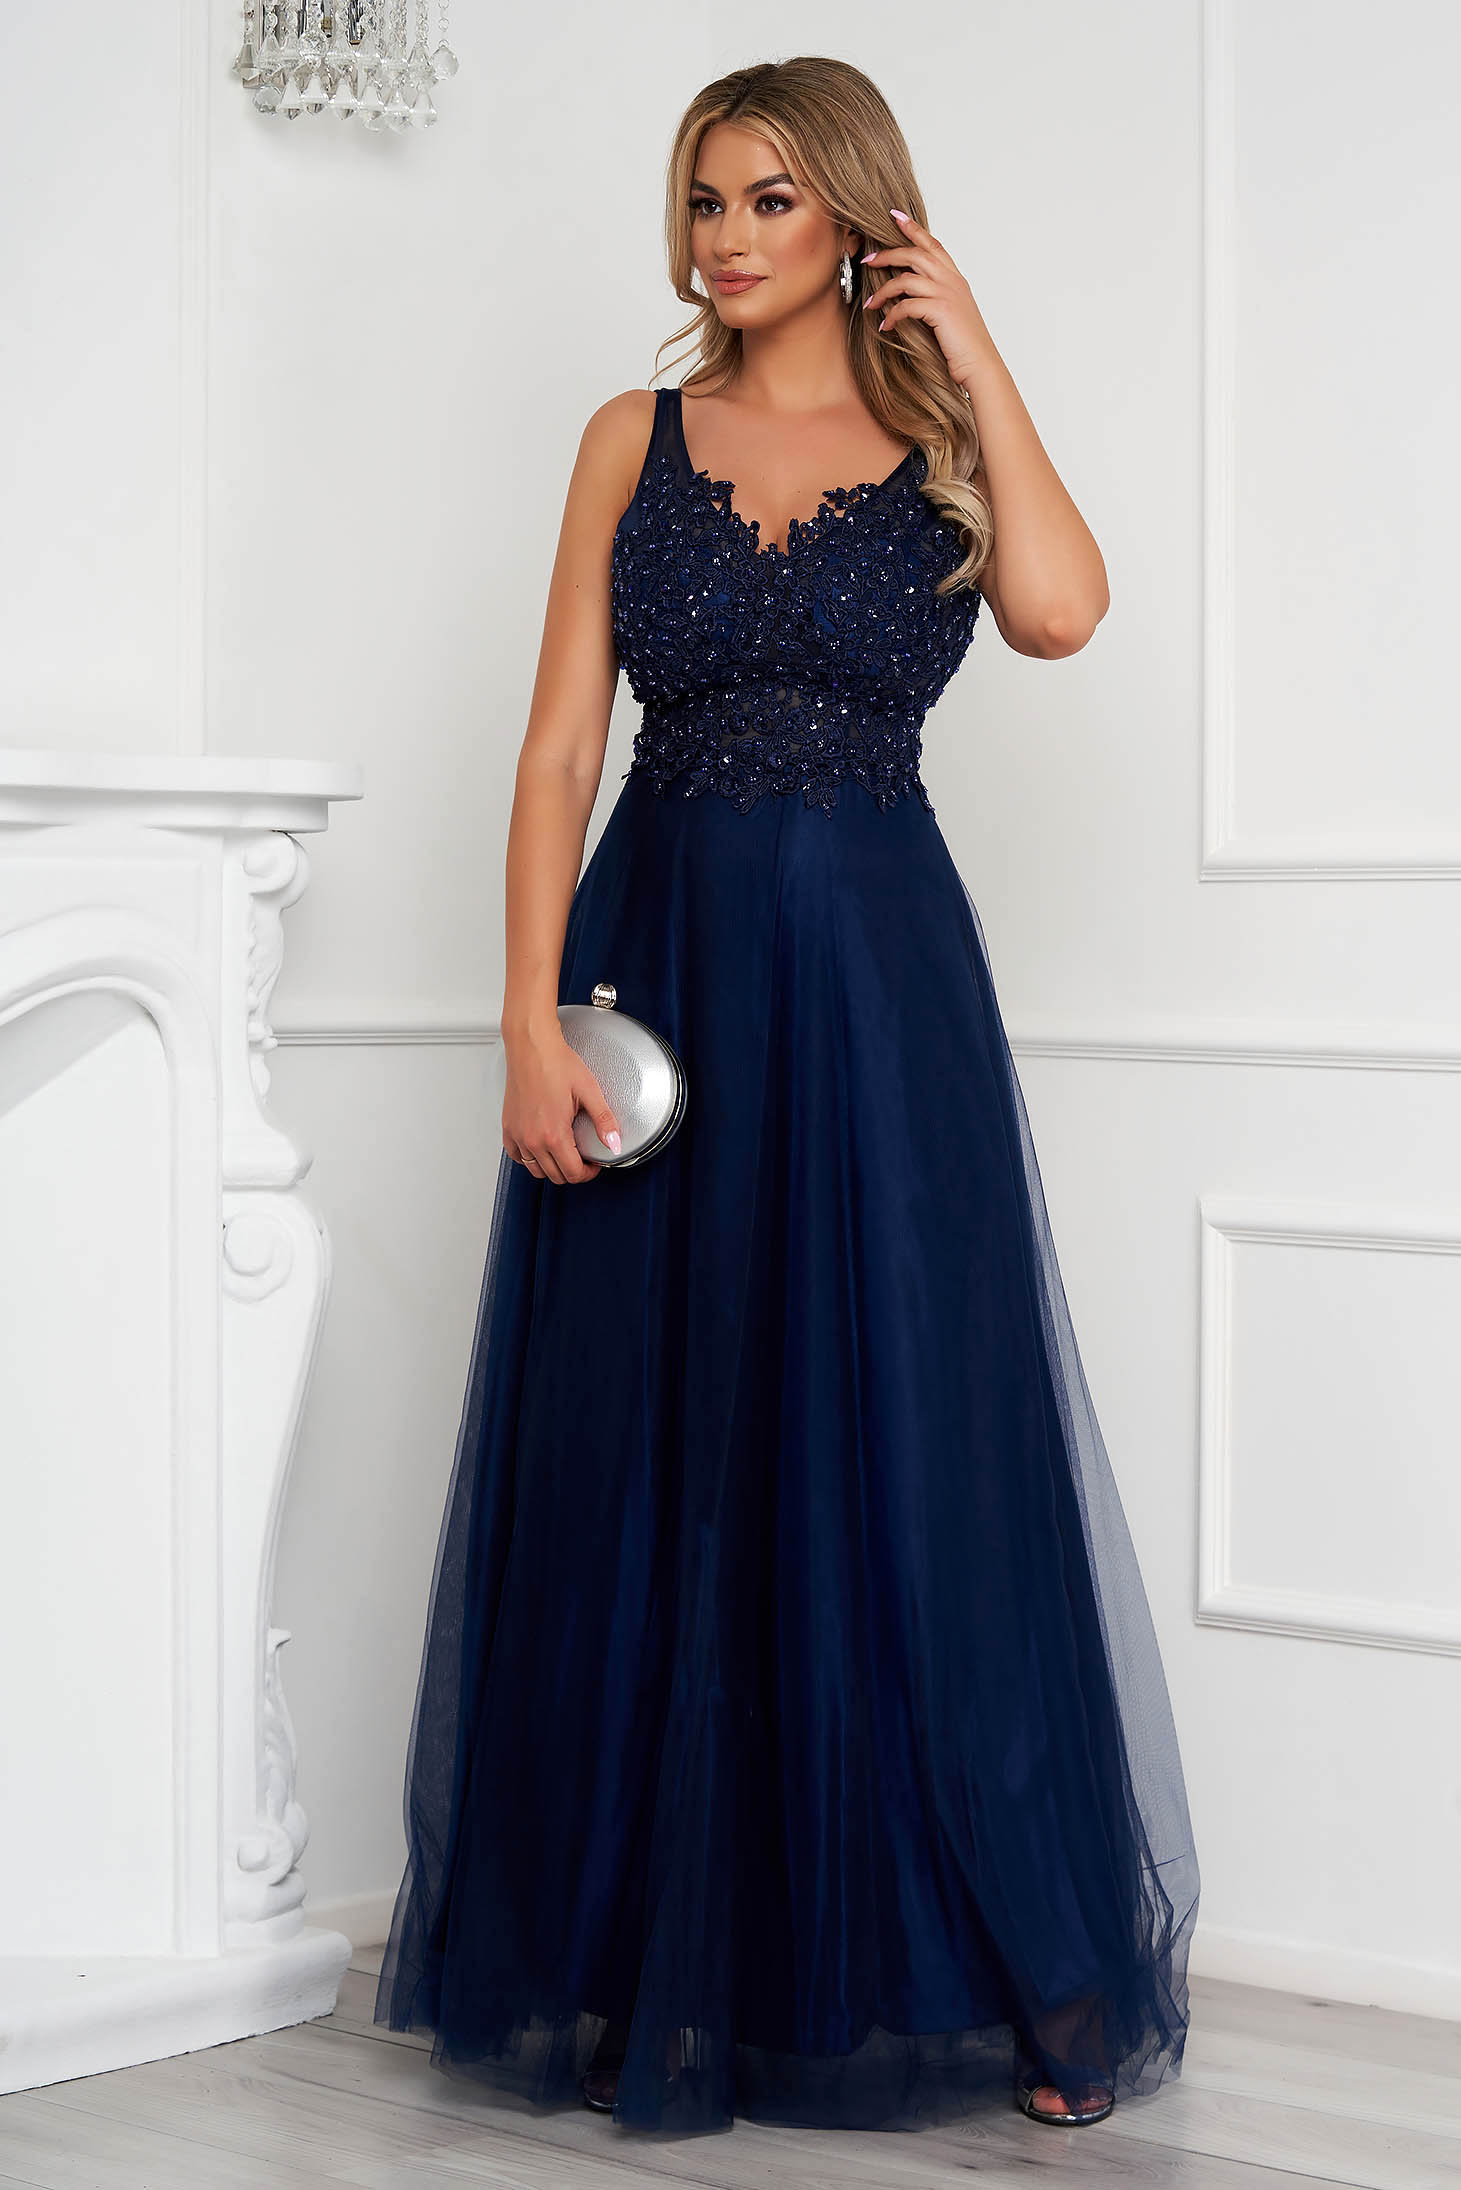 Darkblue dress long occasional cloche from tulle with embroidery details pearls with sequin embellished details